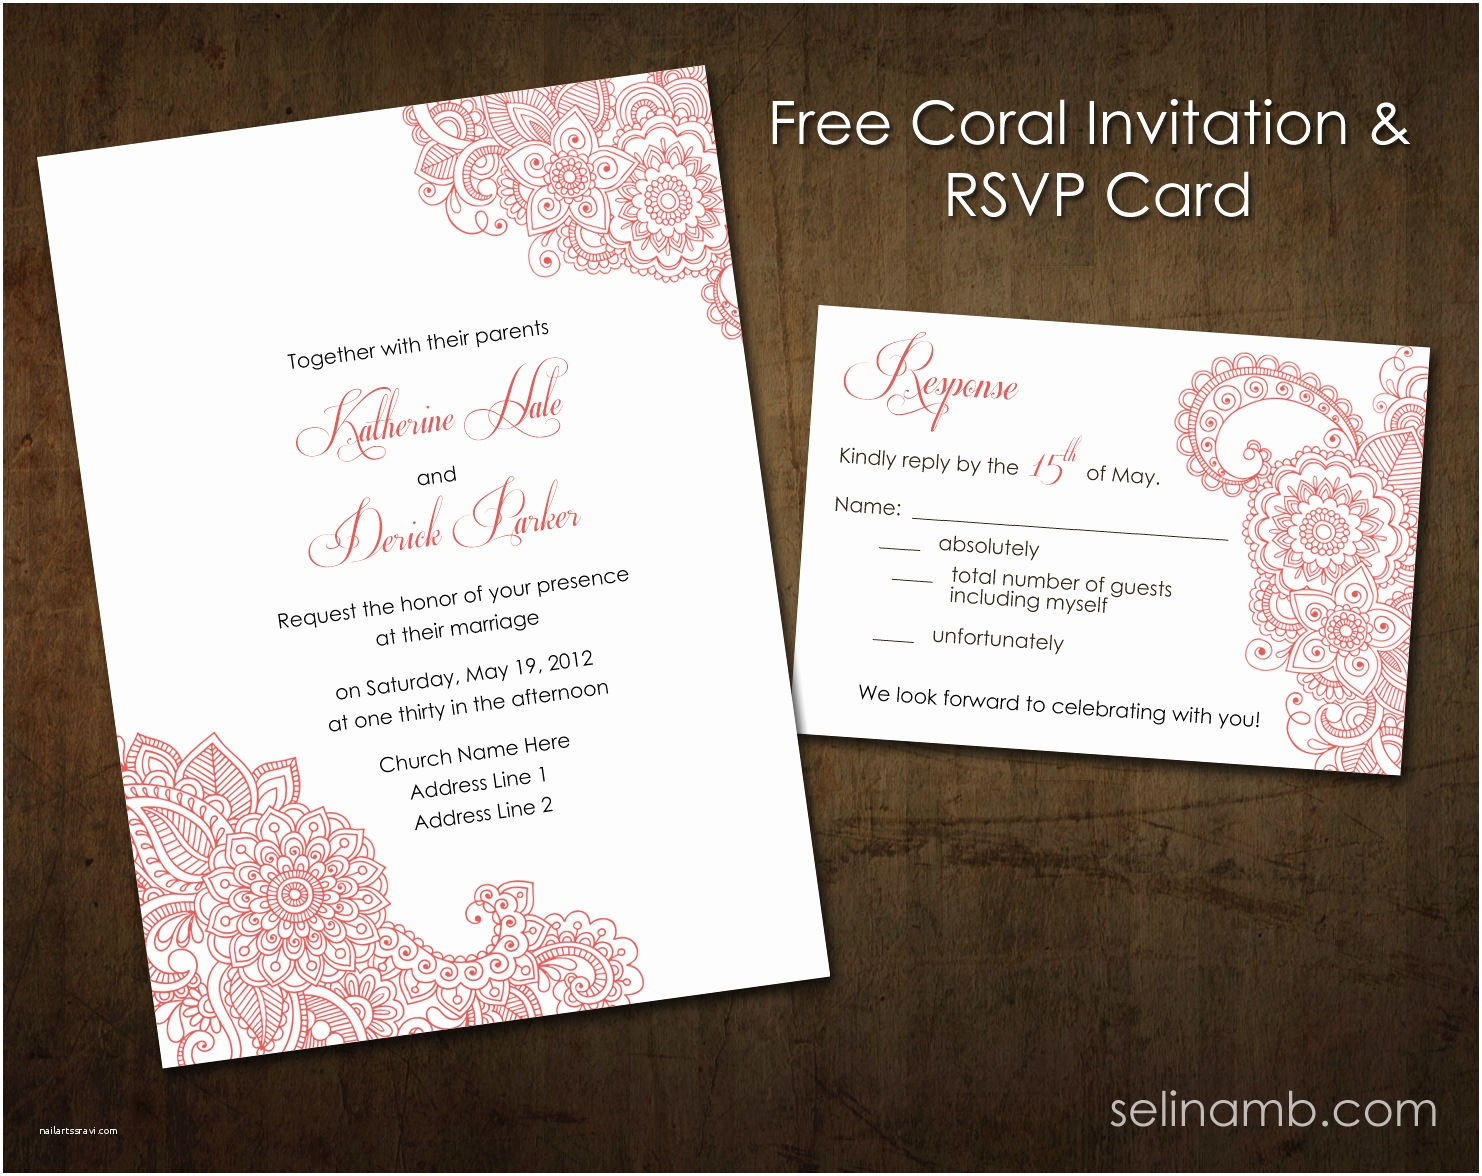 What to Include In Wedding Invitation Wedding Invitations and Rsvp